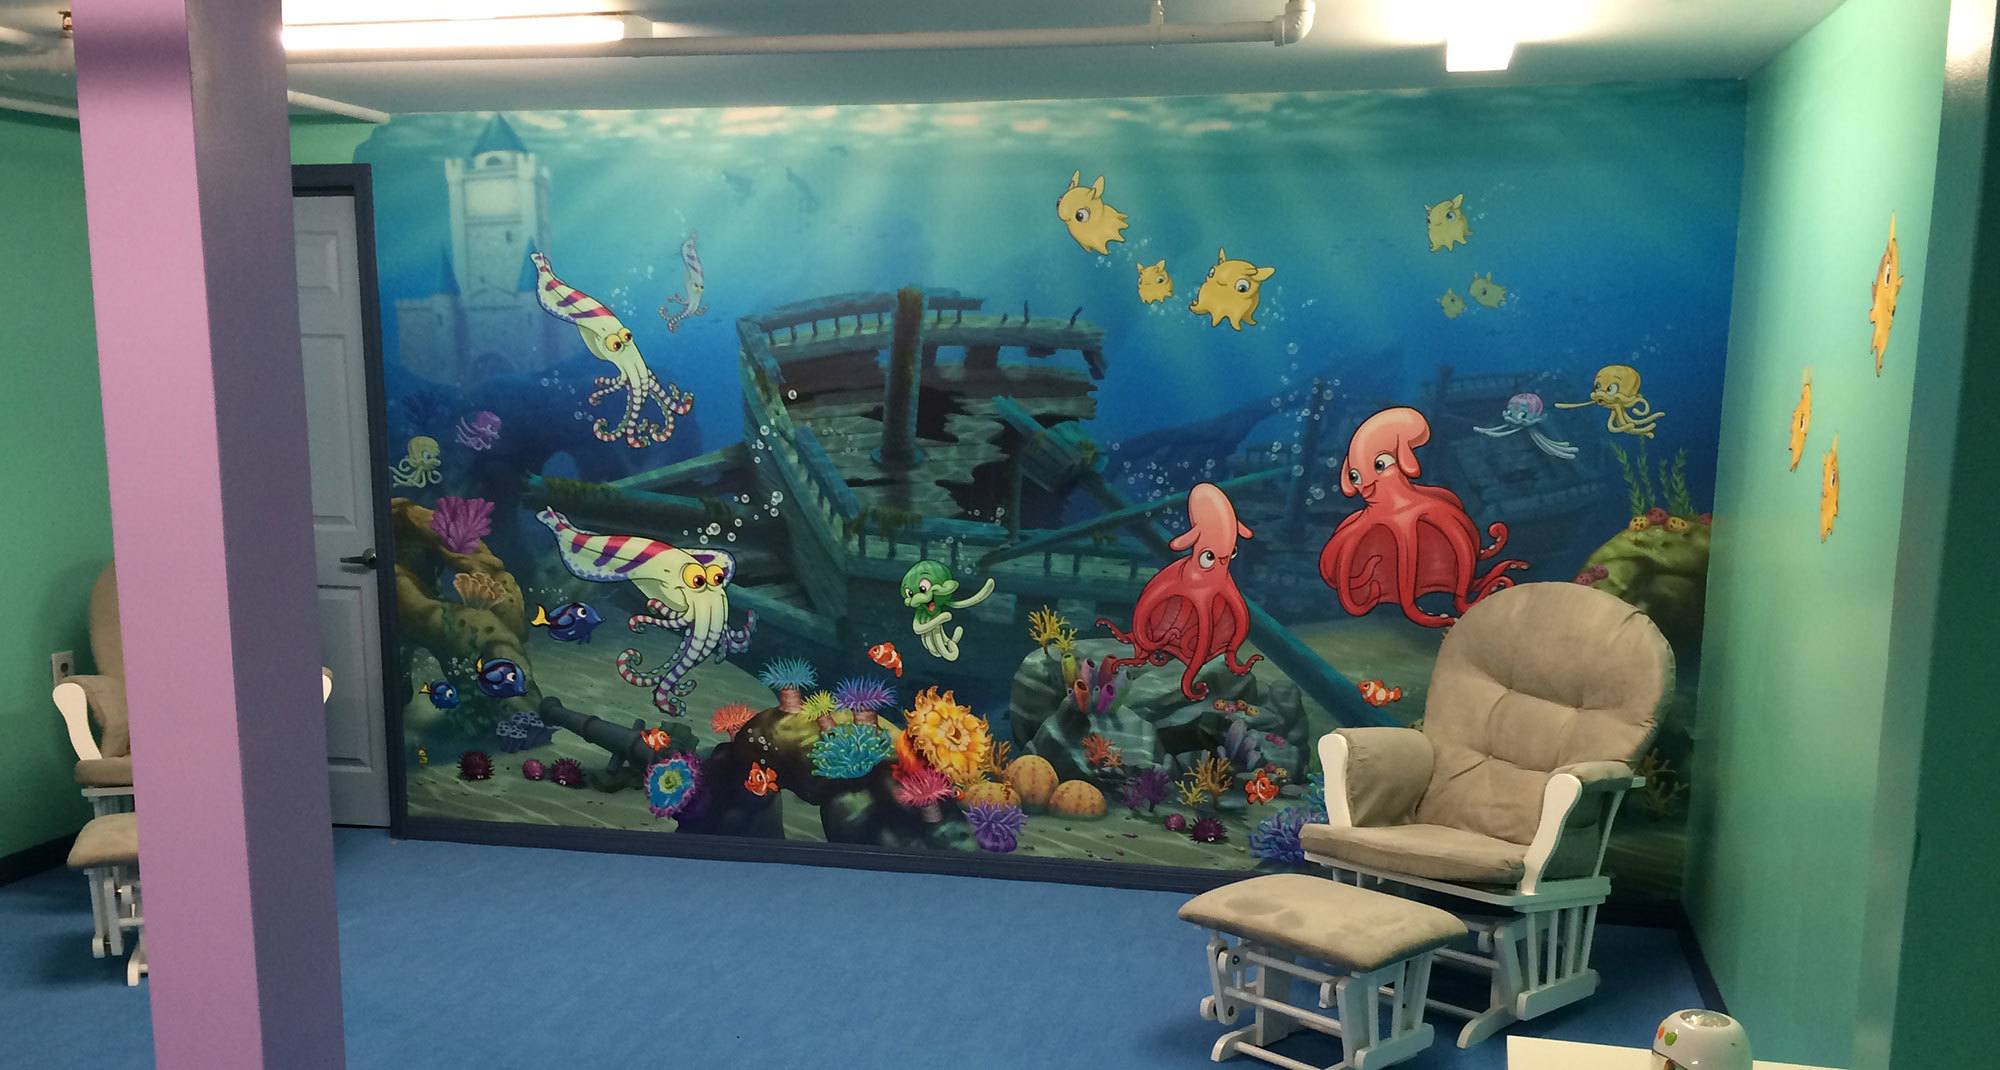 Undersea Themed Wall Covering in Nursery at Relevant Church Tampa